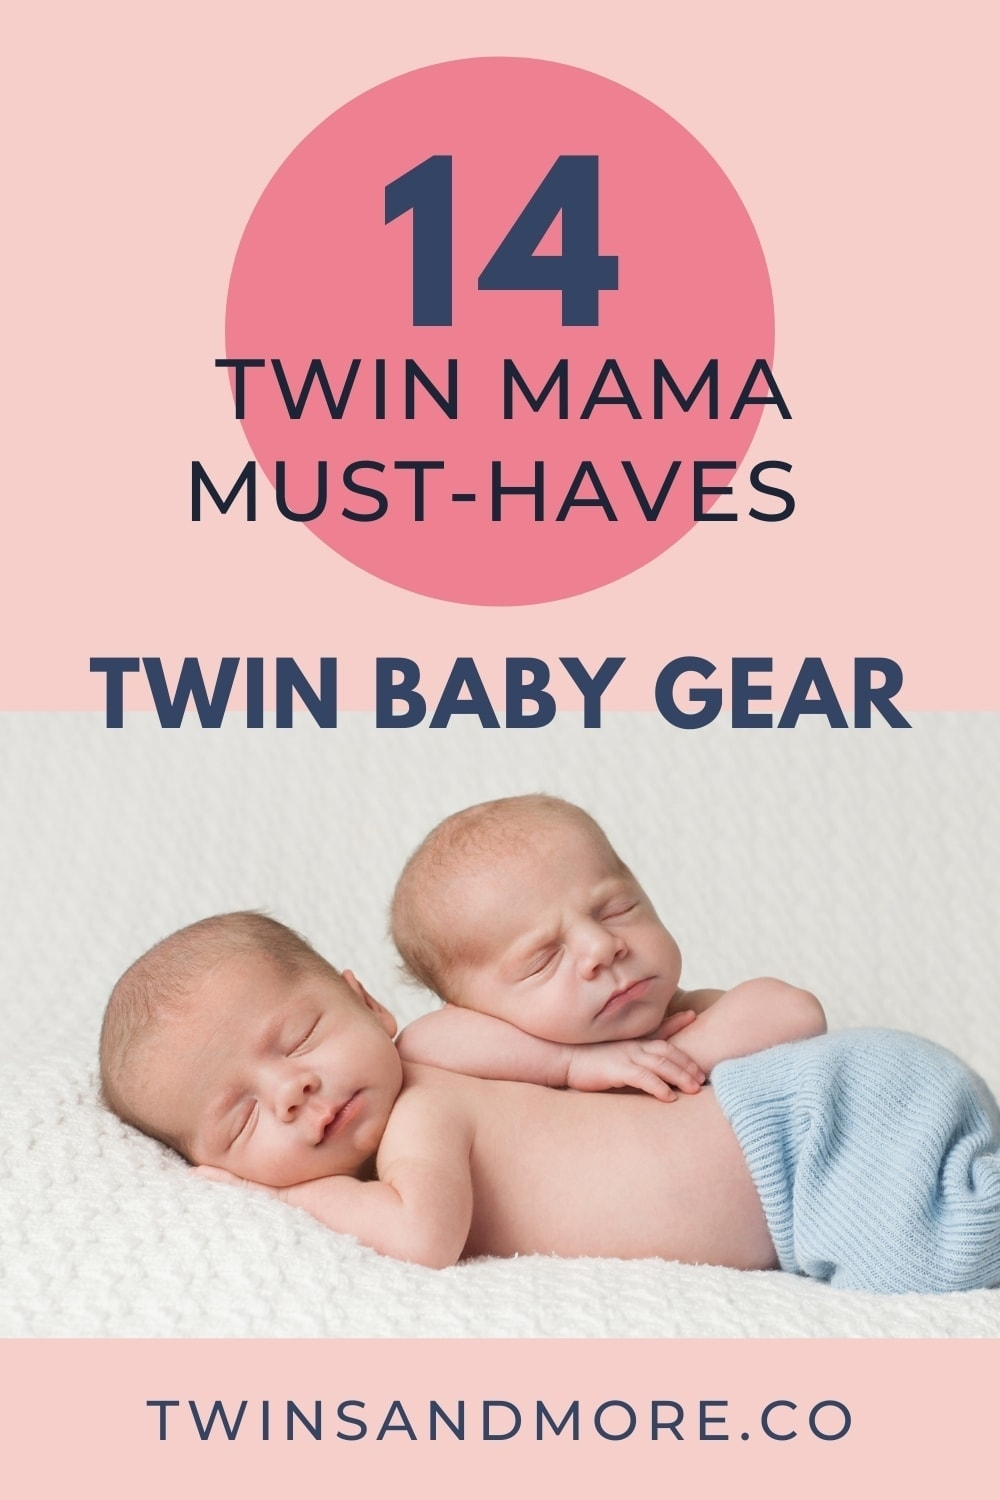 Twin Baby Gear: My Top 14 Twin Mama Must-Haves